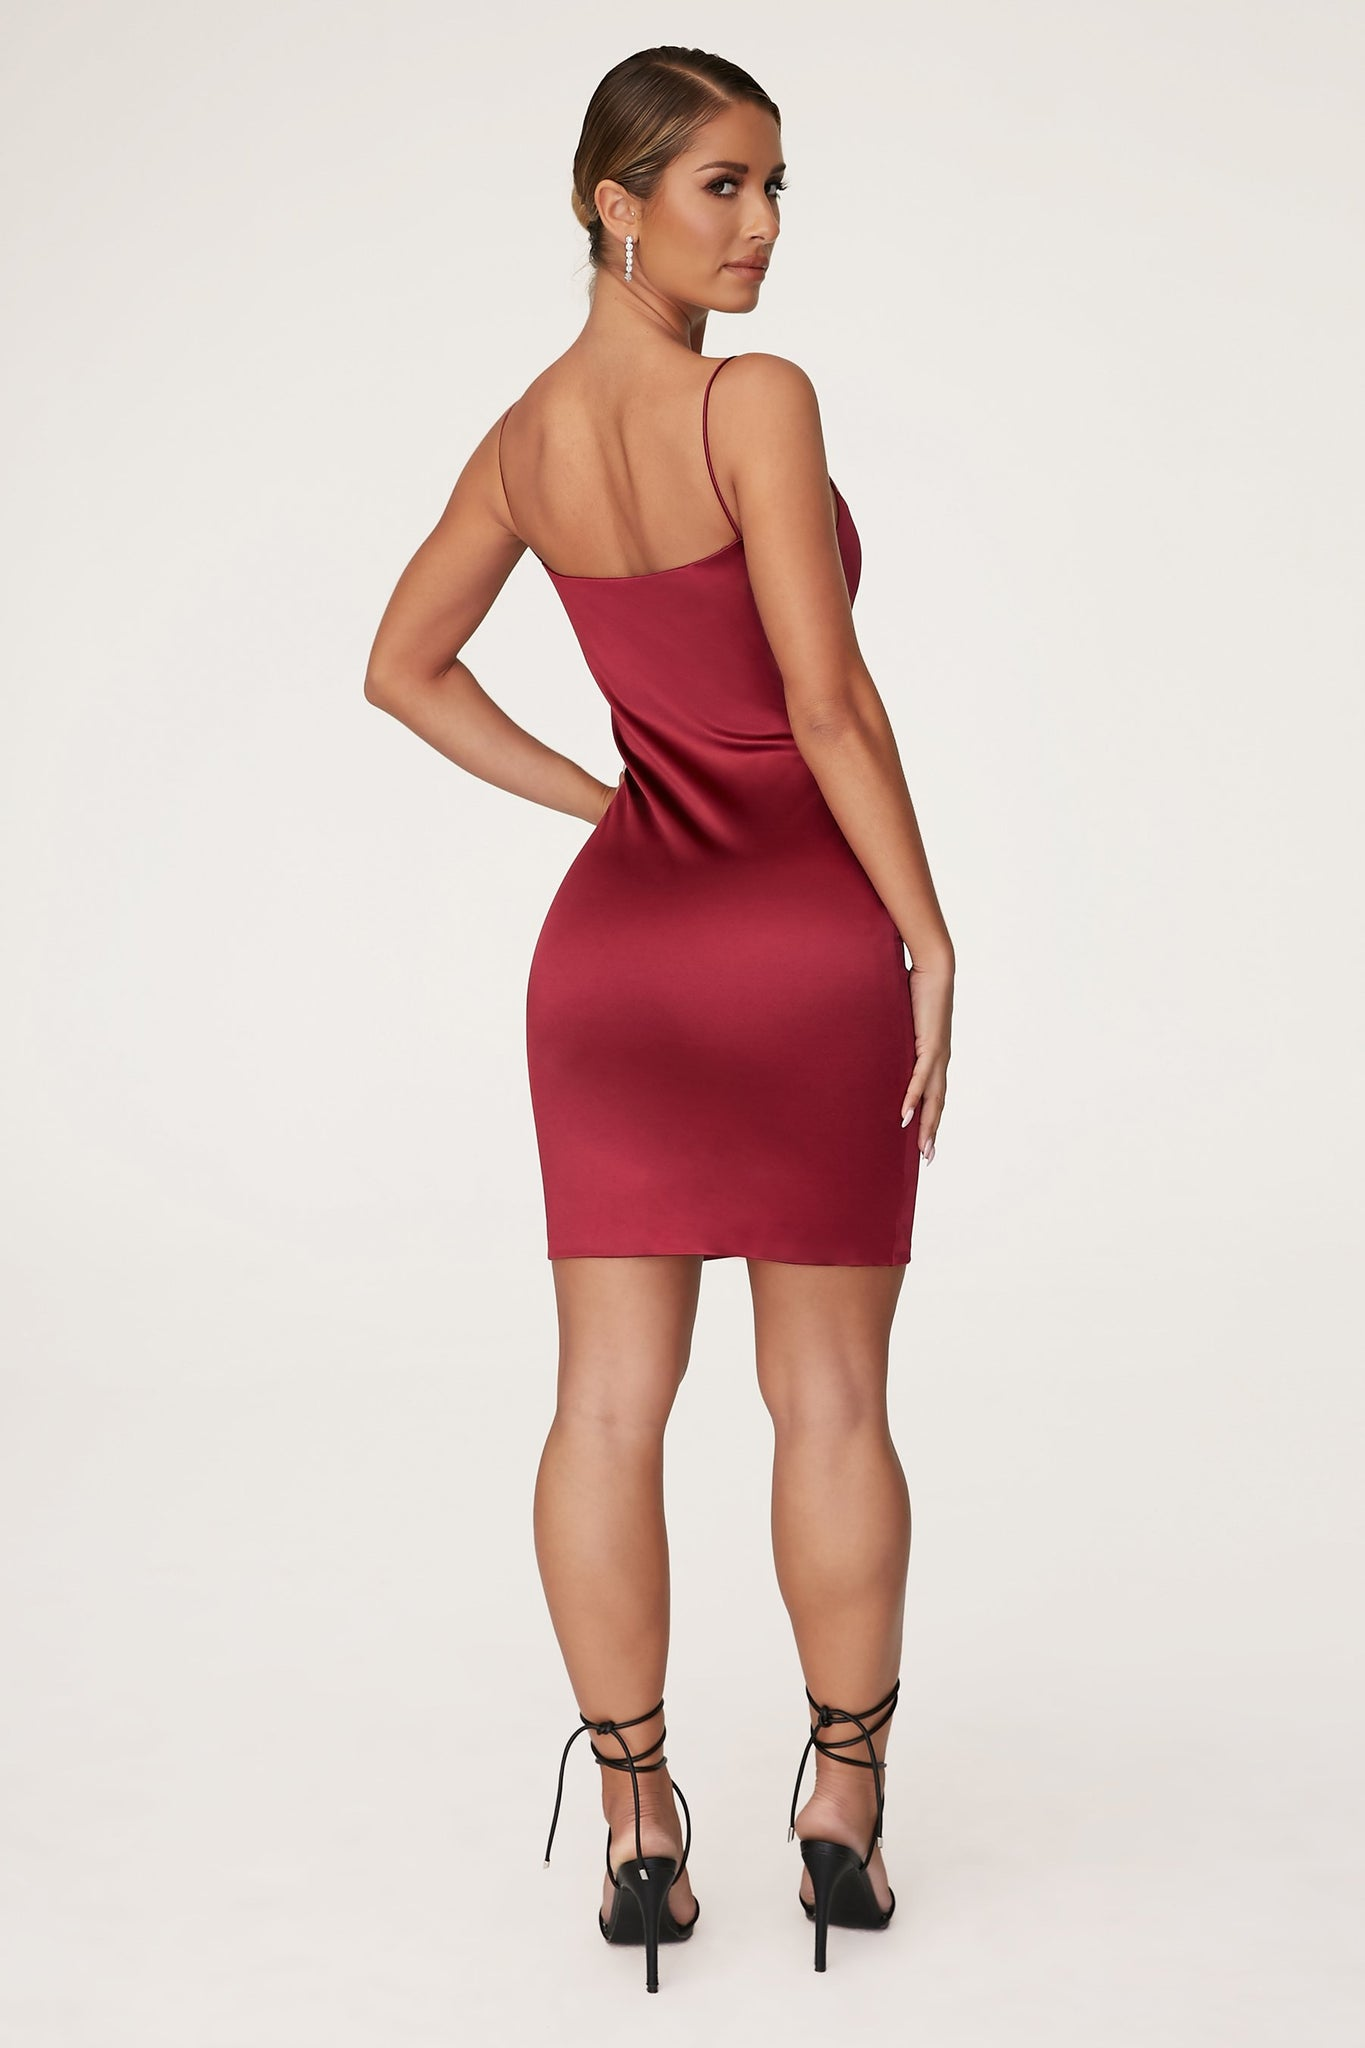 Adrena Thin Strap Mini Dress - Burgundy - MESHKI